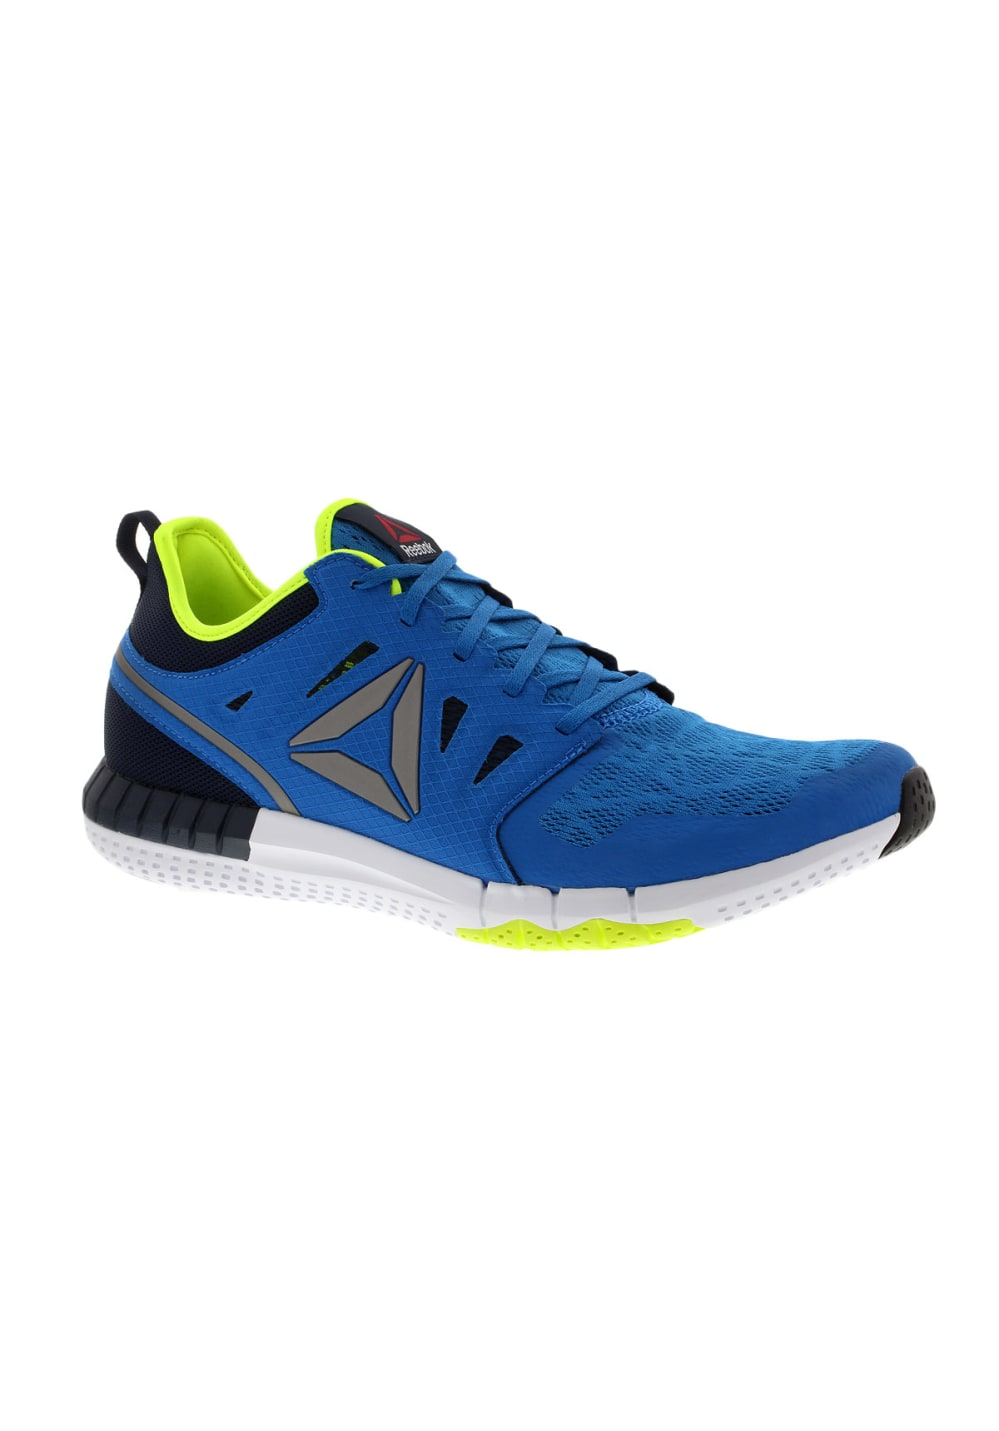 reebok zprint 3d running shoes for men blue 21run